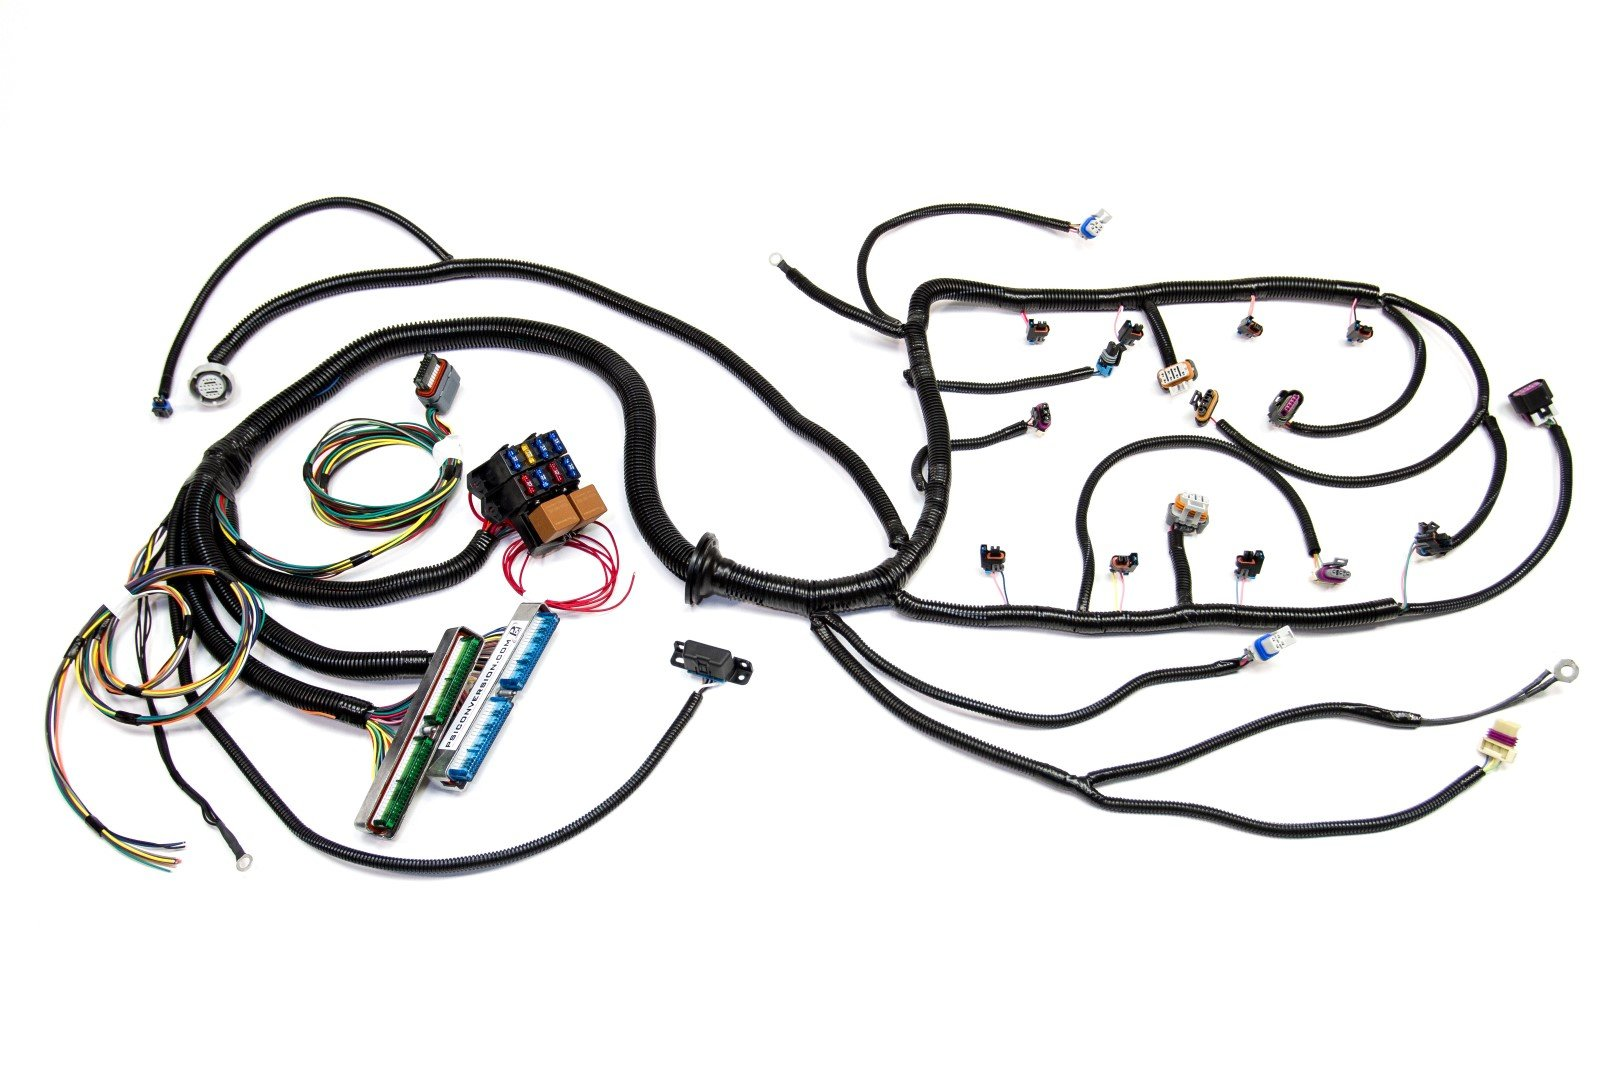 hight resolution of  07 vortec w 4l60e standalone wiring harness dbw